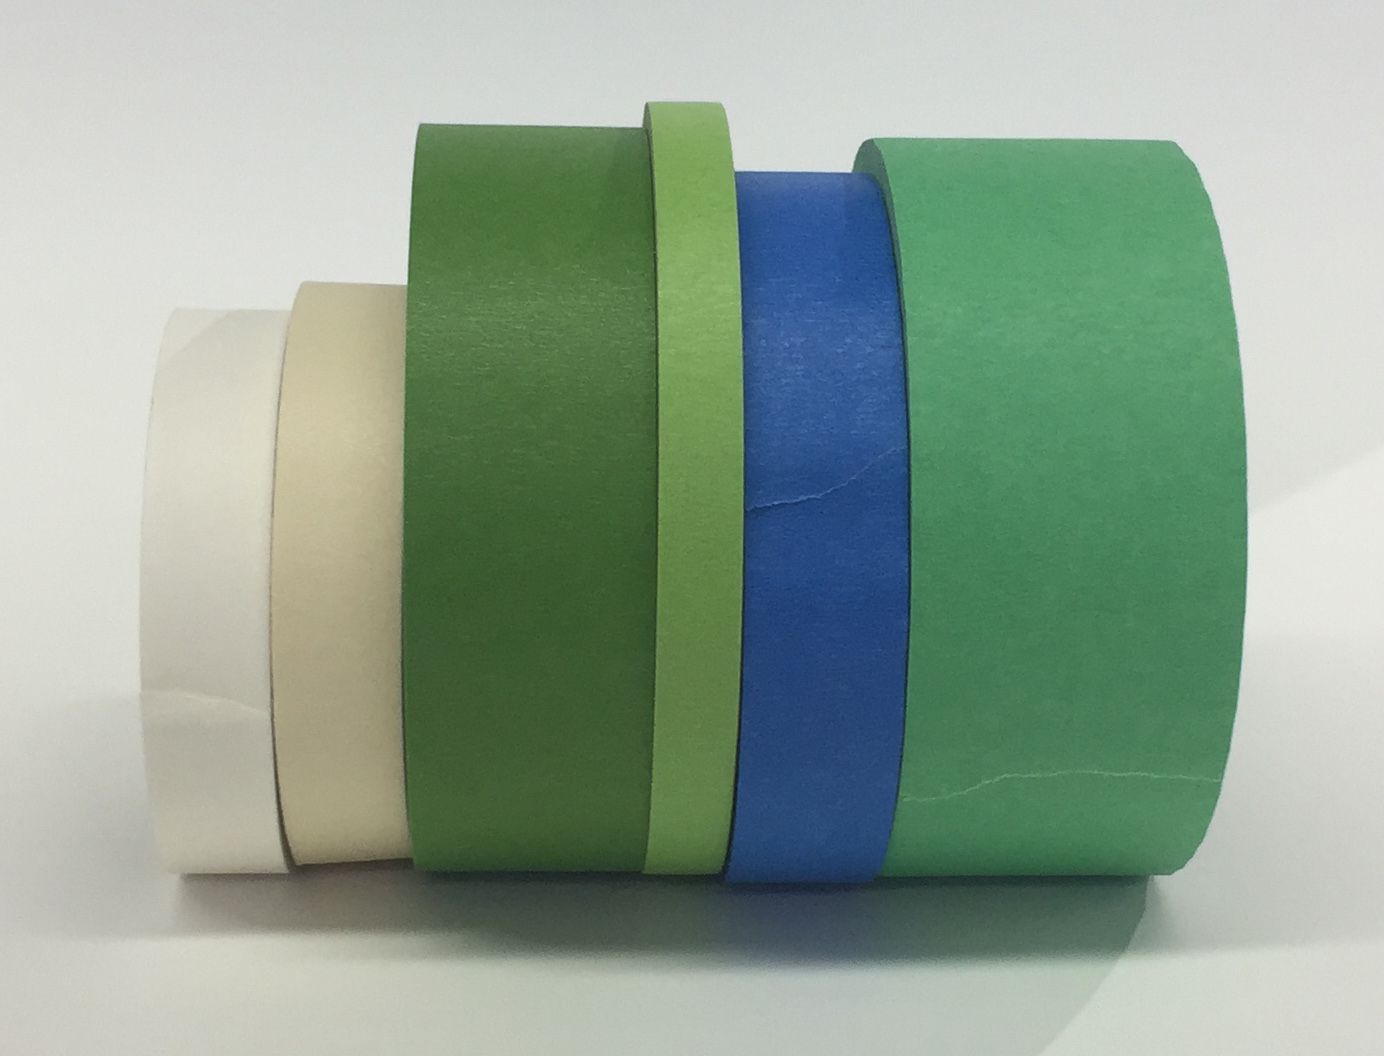 An assortment of masking and low-tack painter's tapes.